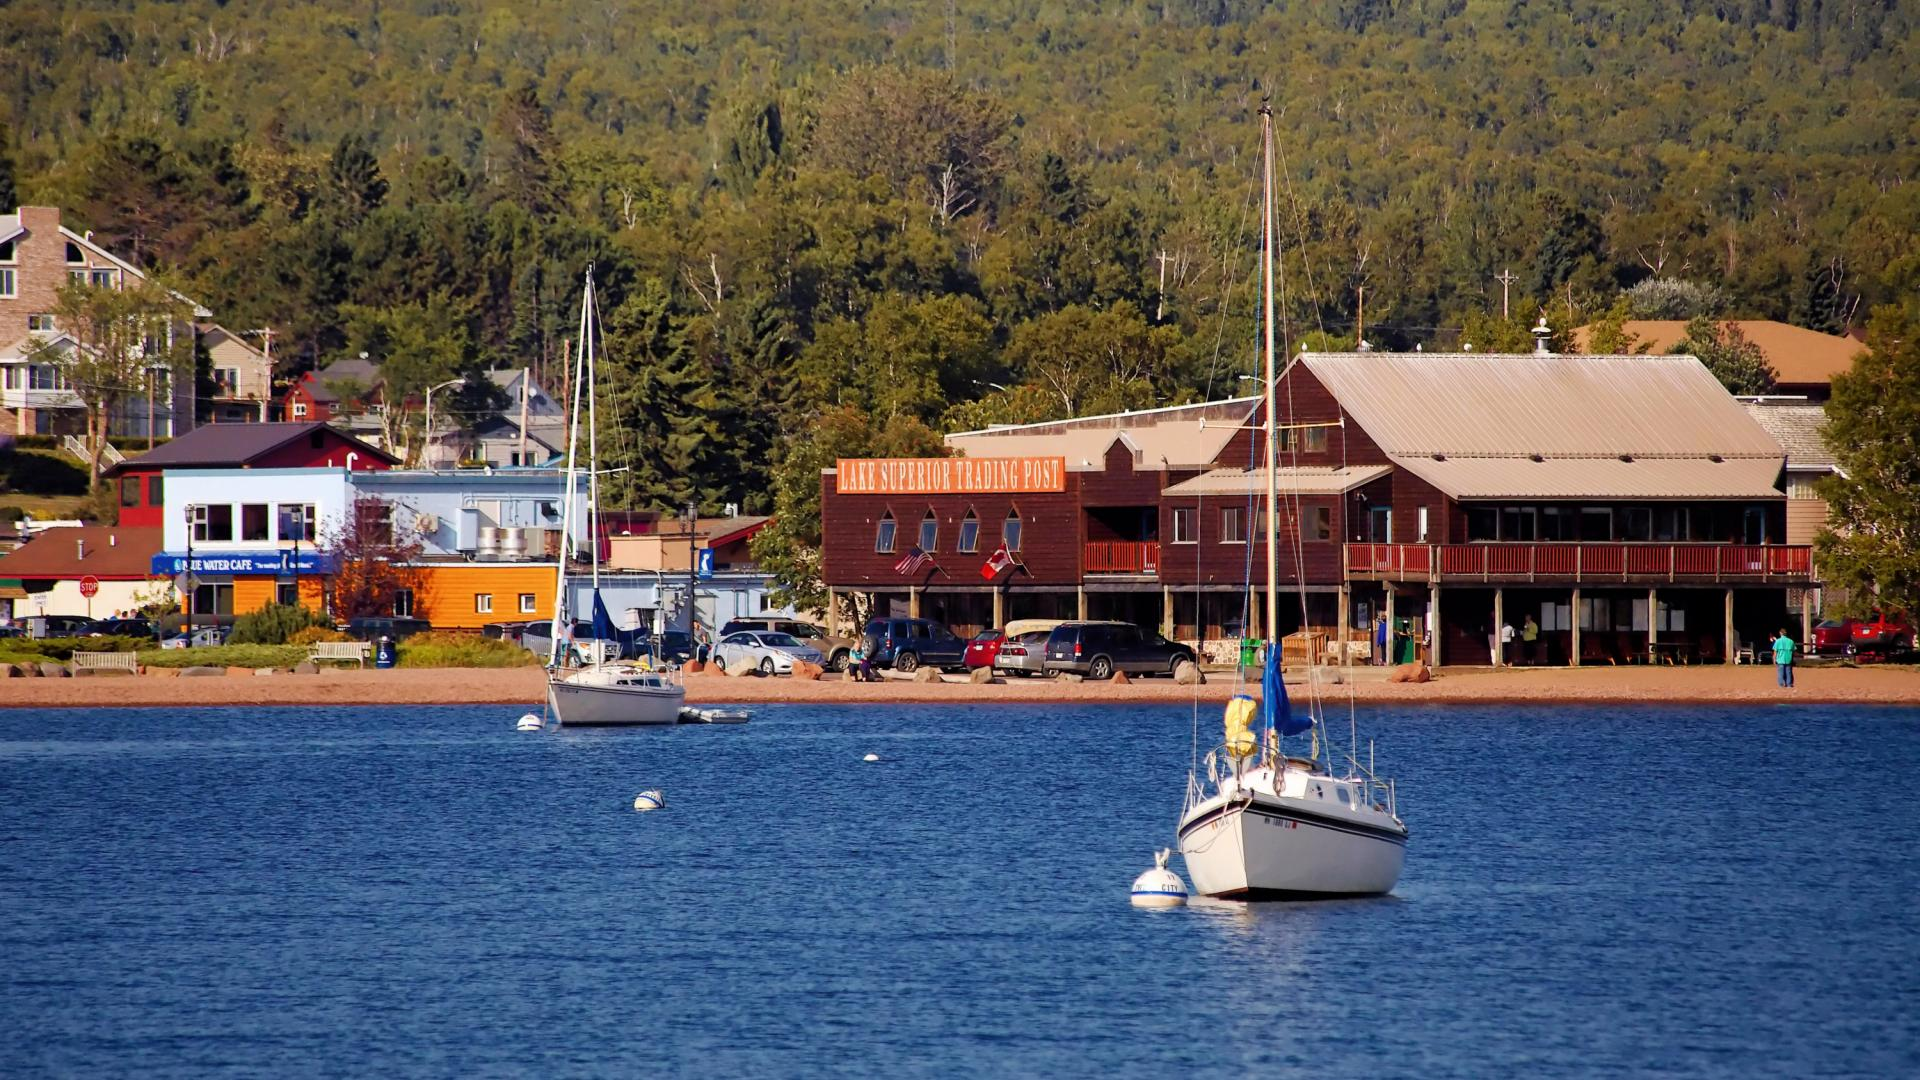 The Grand Marais harbor as seen from Lake Superior